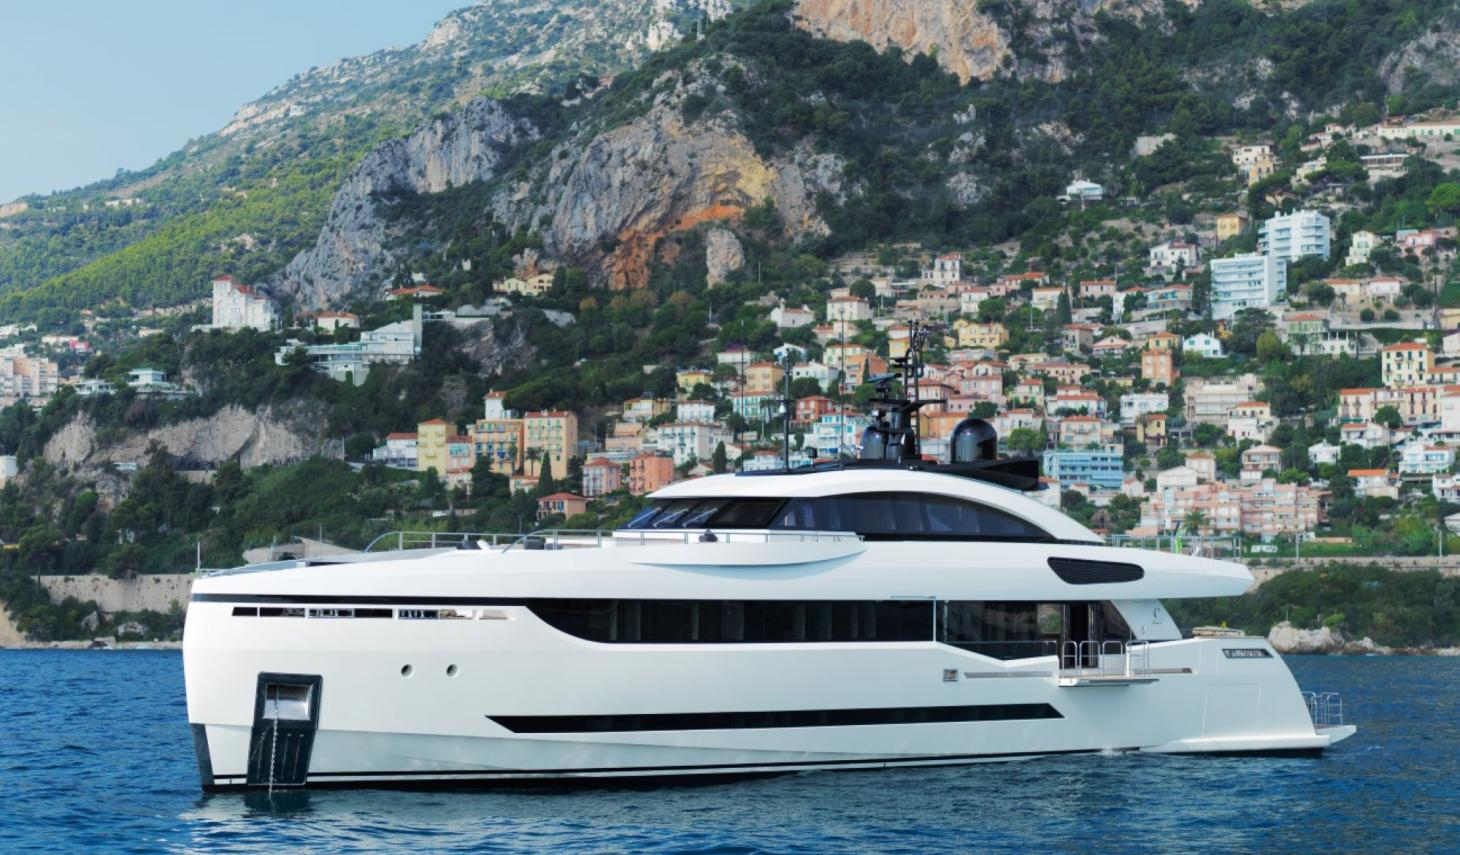 40m Palumbo Columbus Superyacht With Fold Out Balcony At Anchor